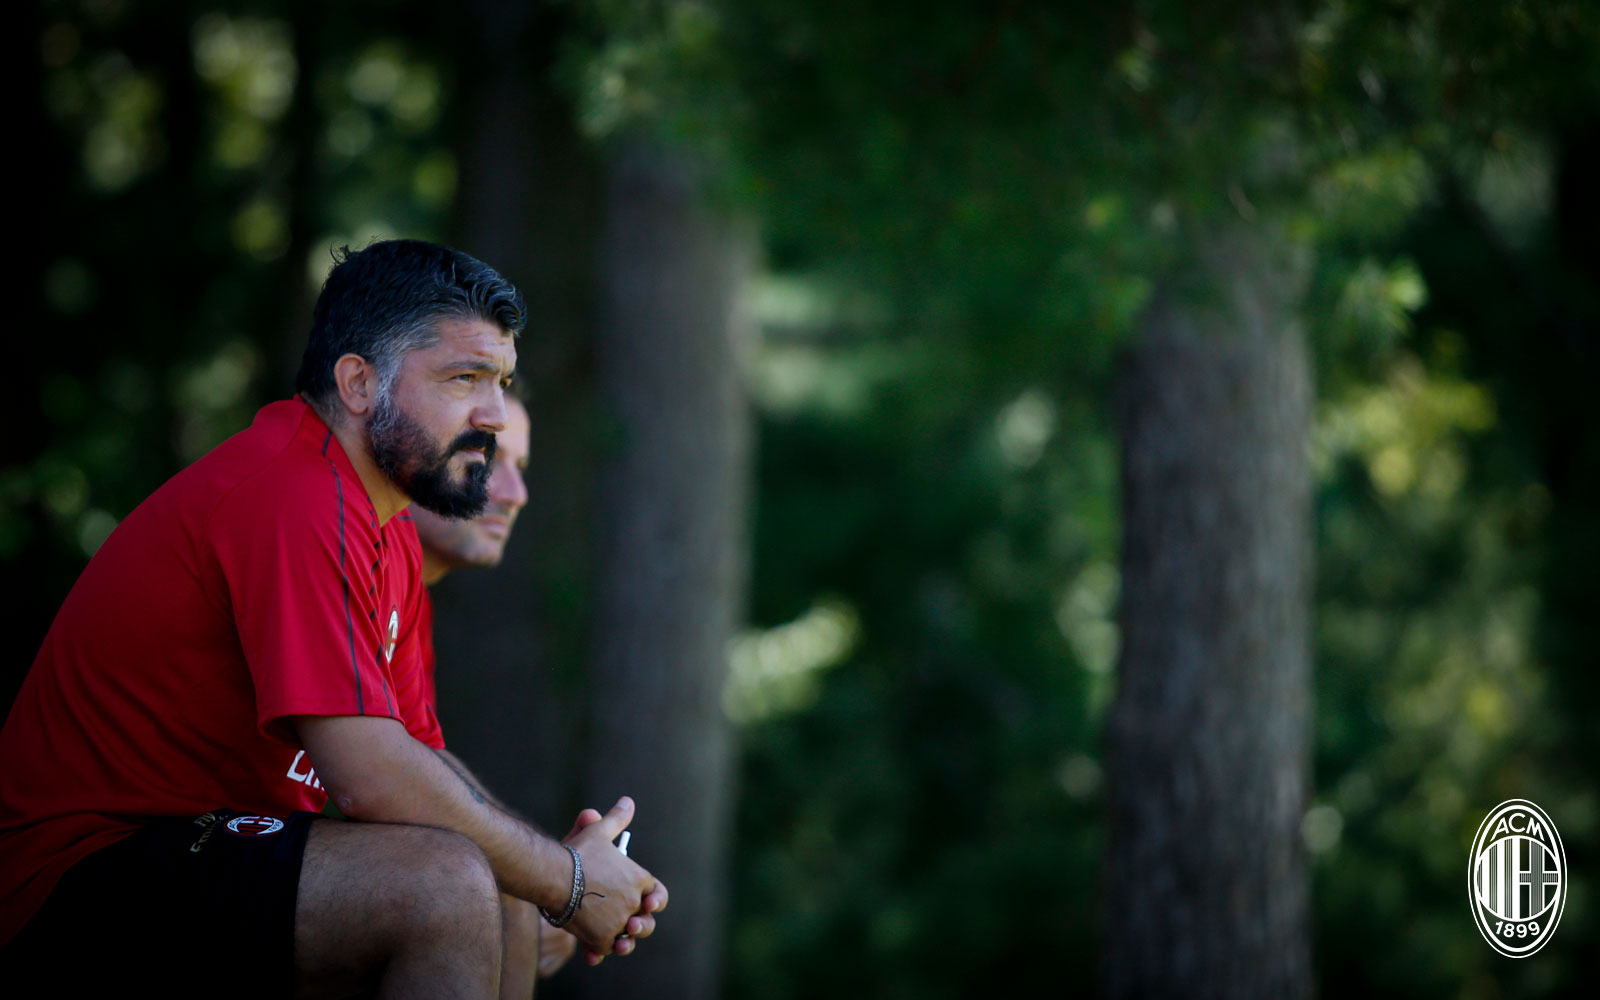 Gennaro Gattuso during training at Milanello. (@acmilan.com)